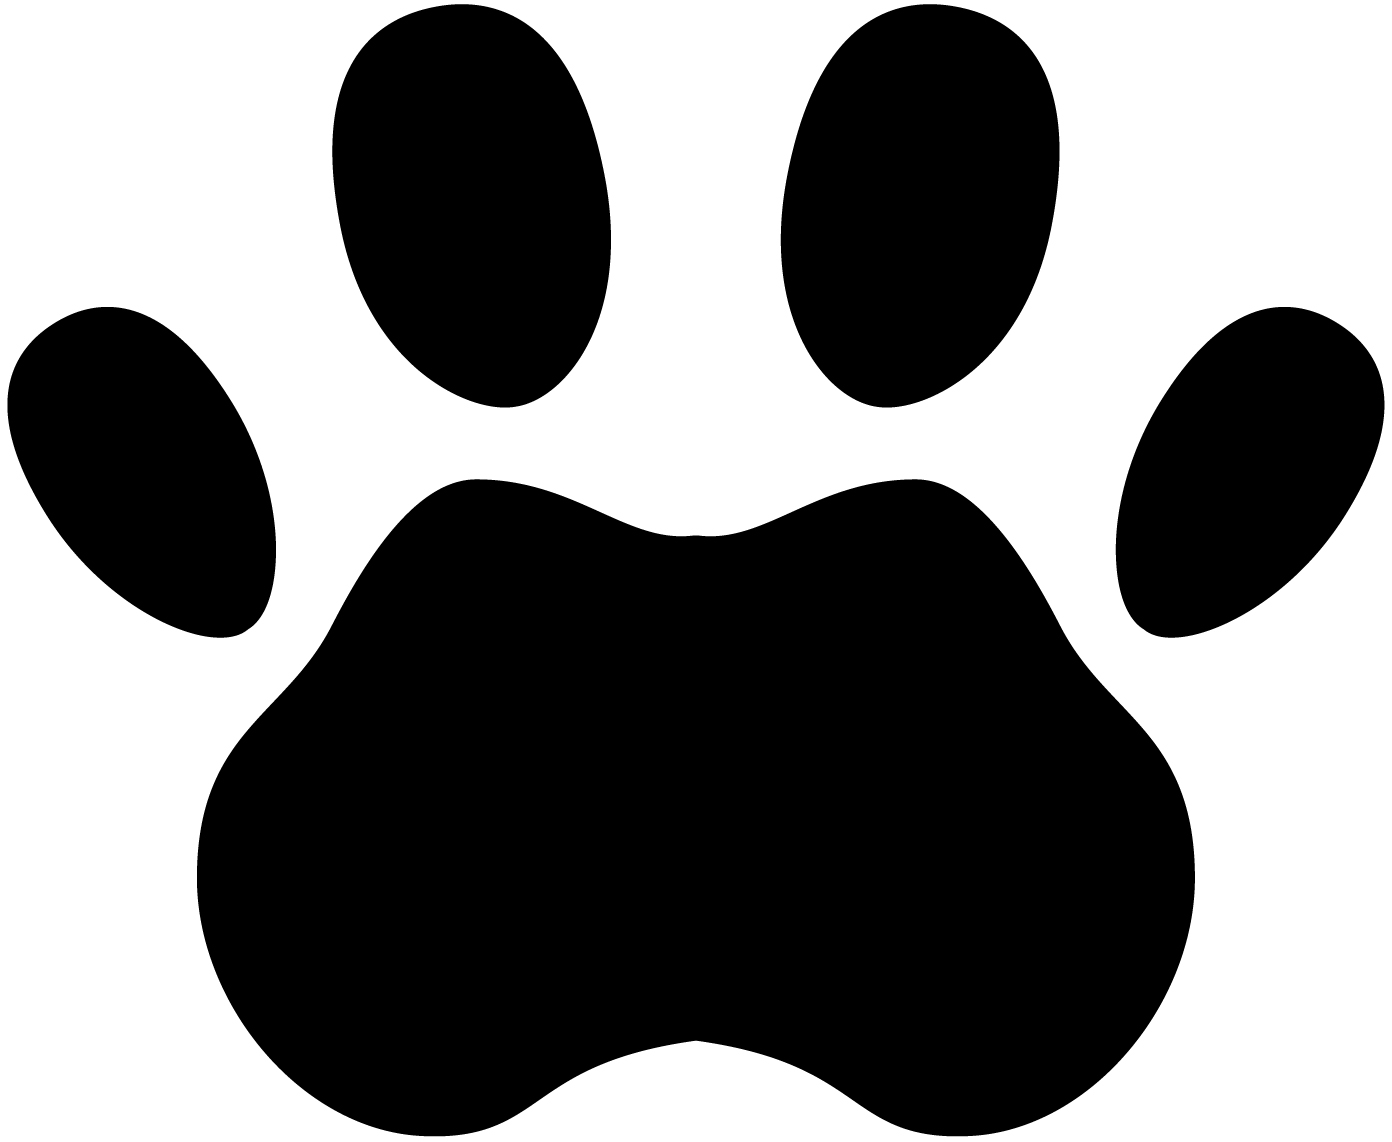 Paw Logos - ClipArt Best - ClipArt Best